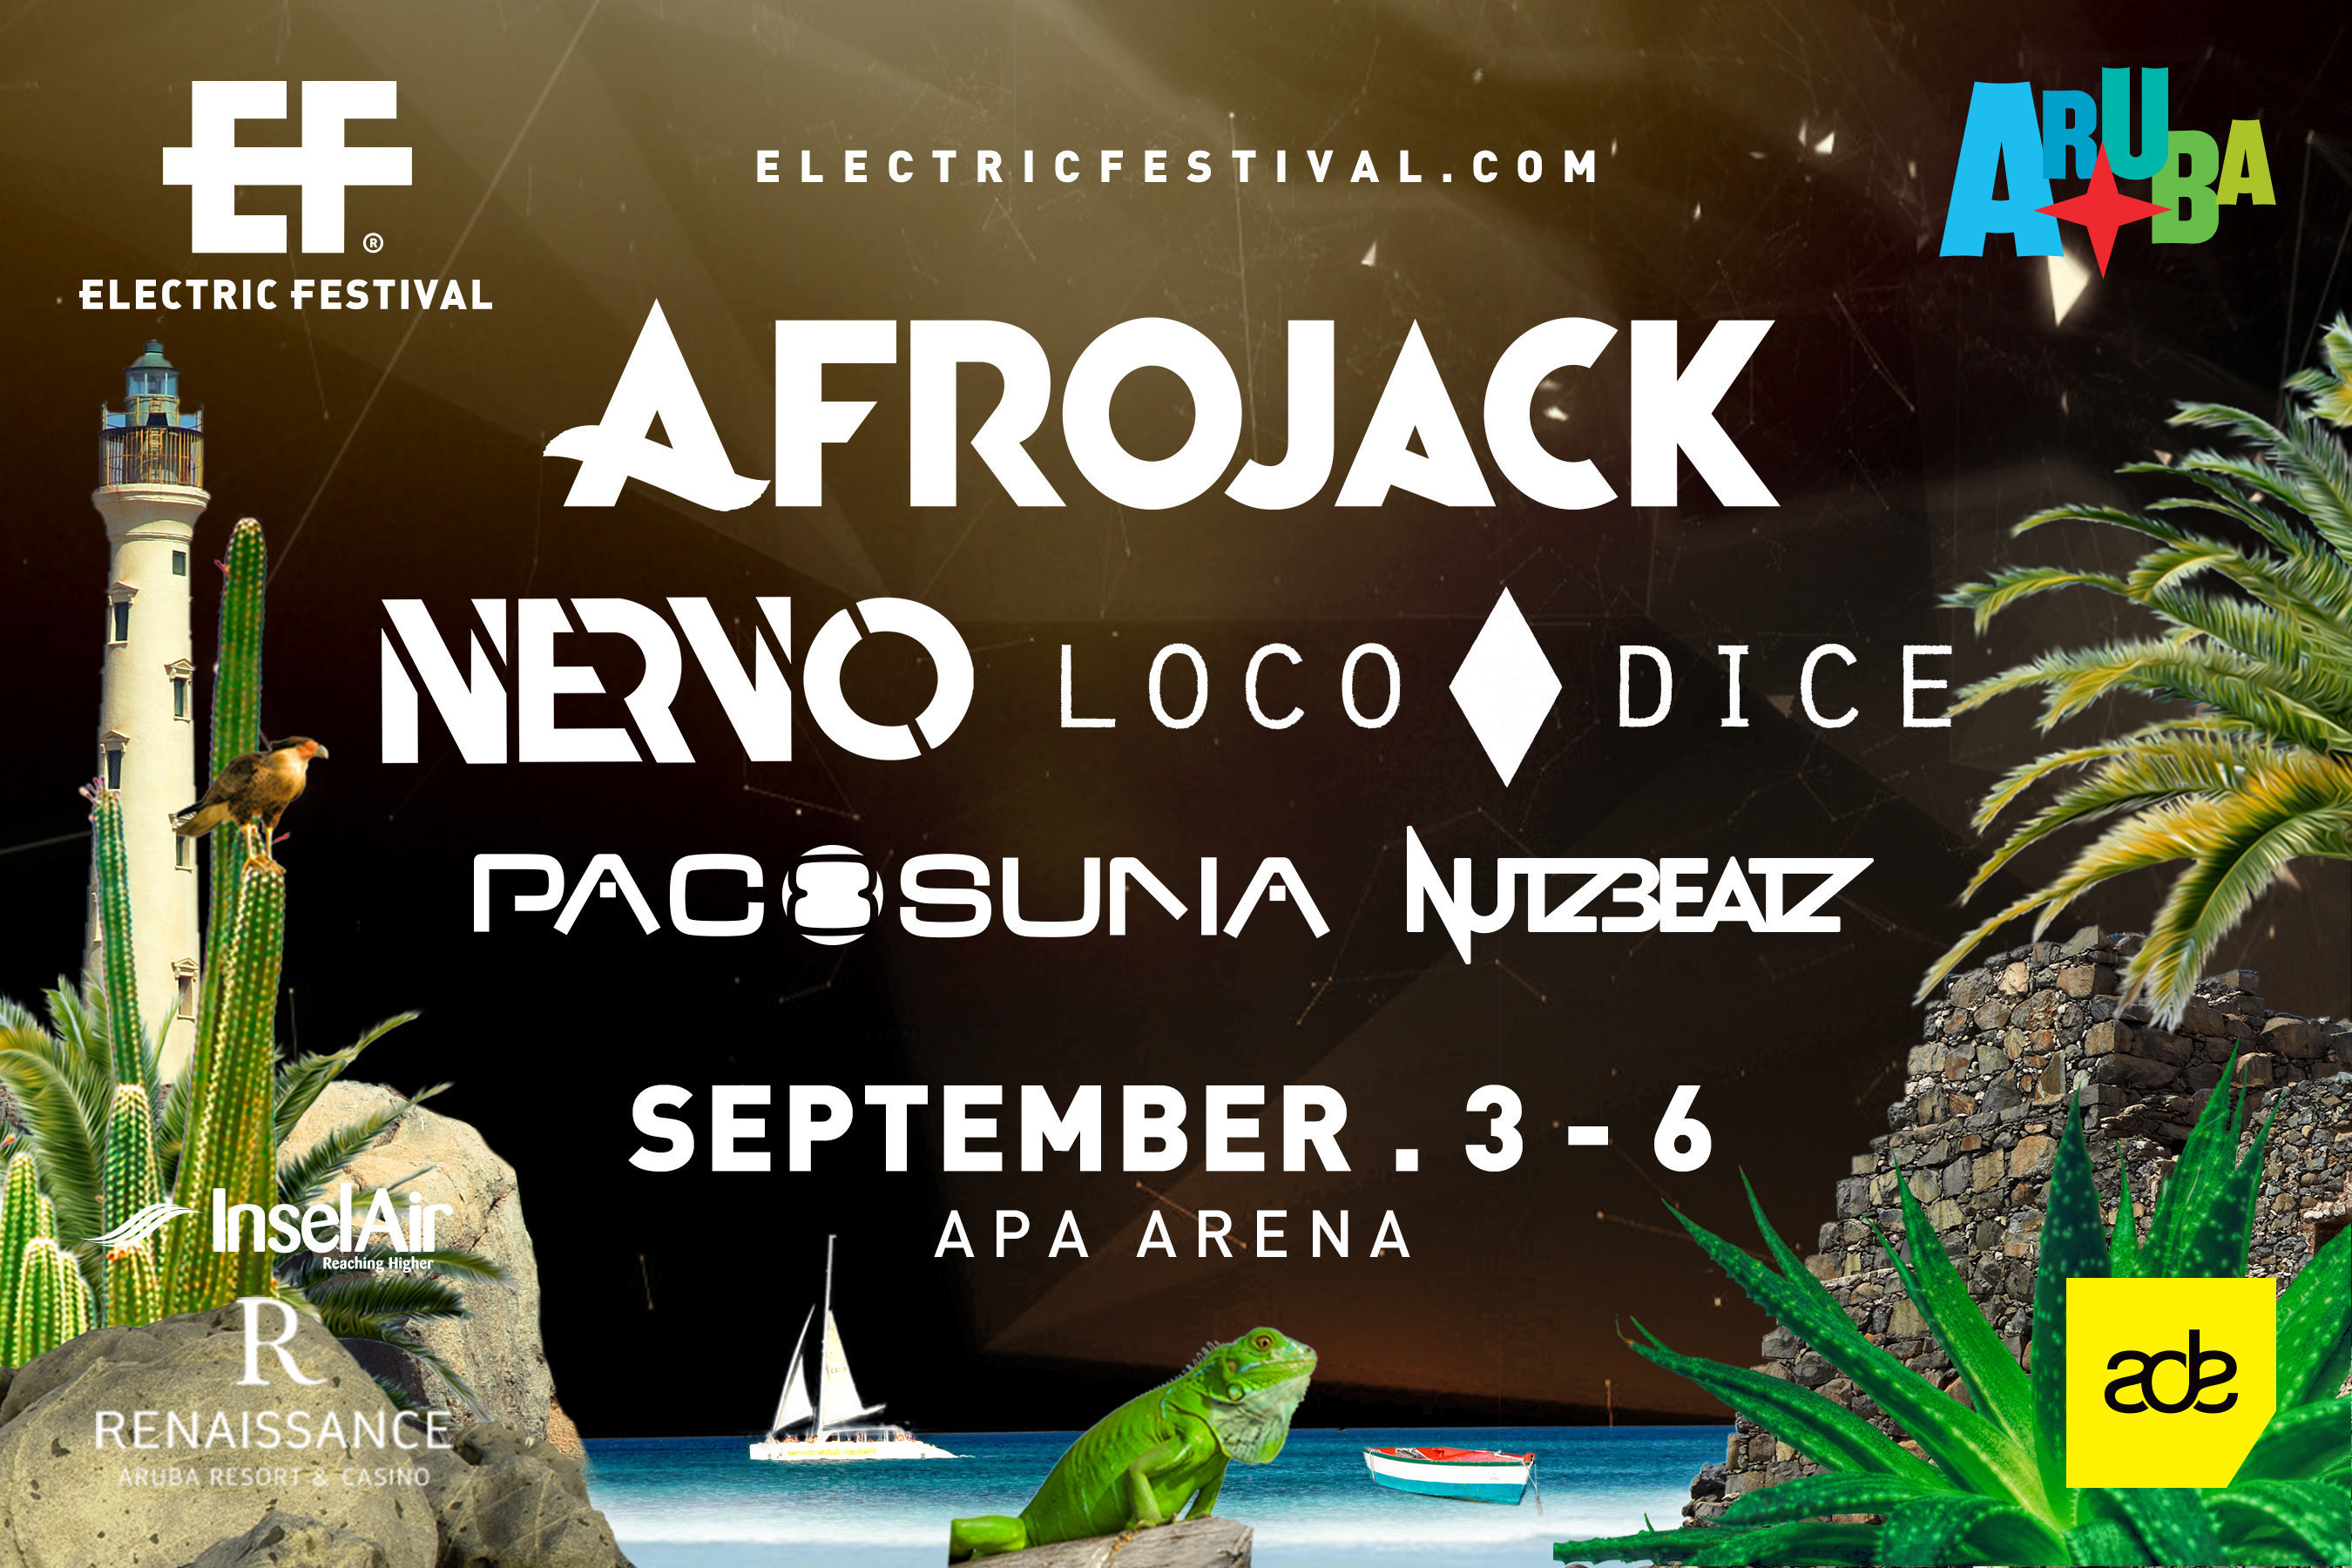 The full lineup for Electric Festival in Aruba on #LaborDayWeekend.